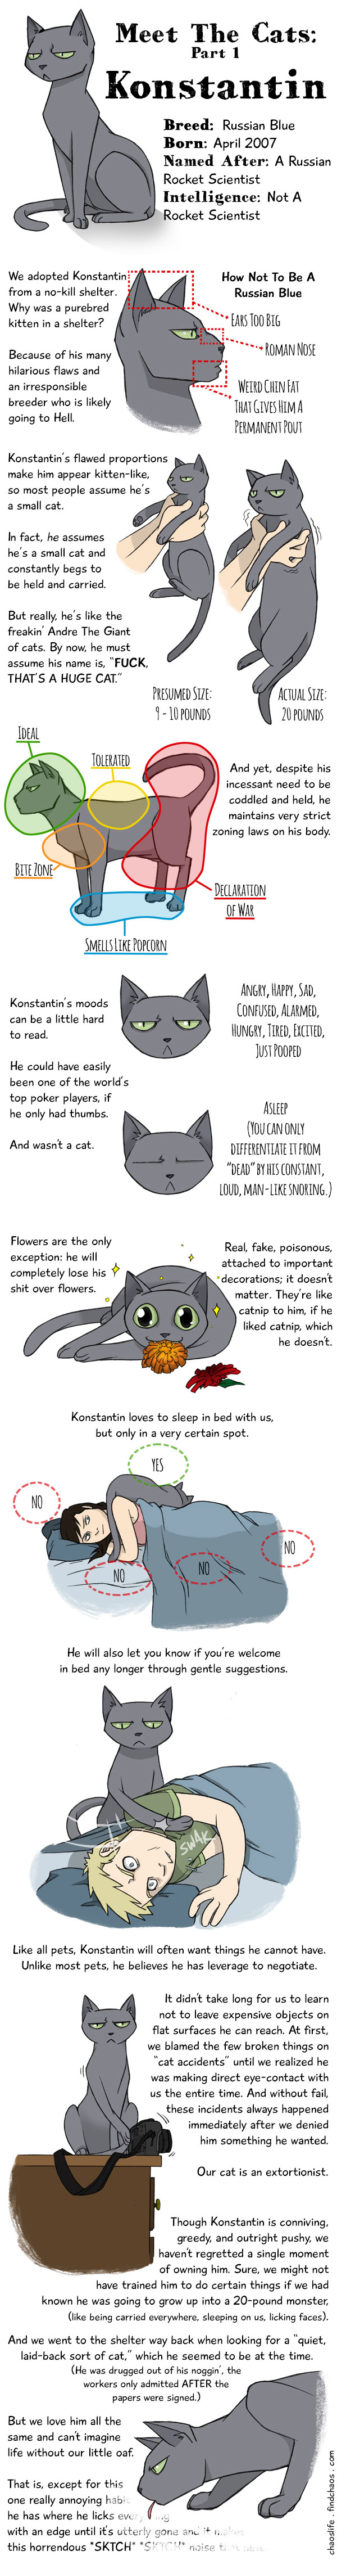 Meet The Cats: Konstantin